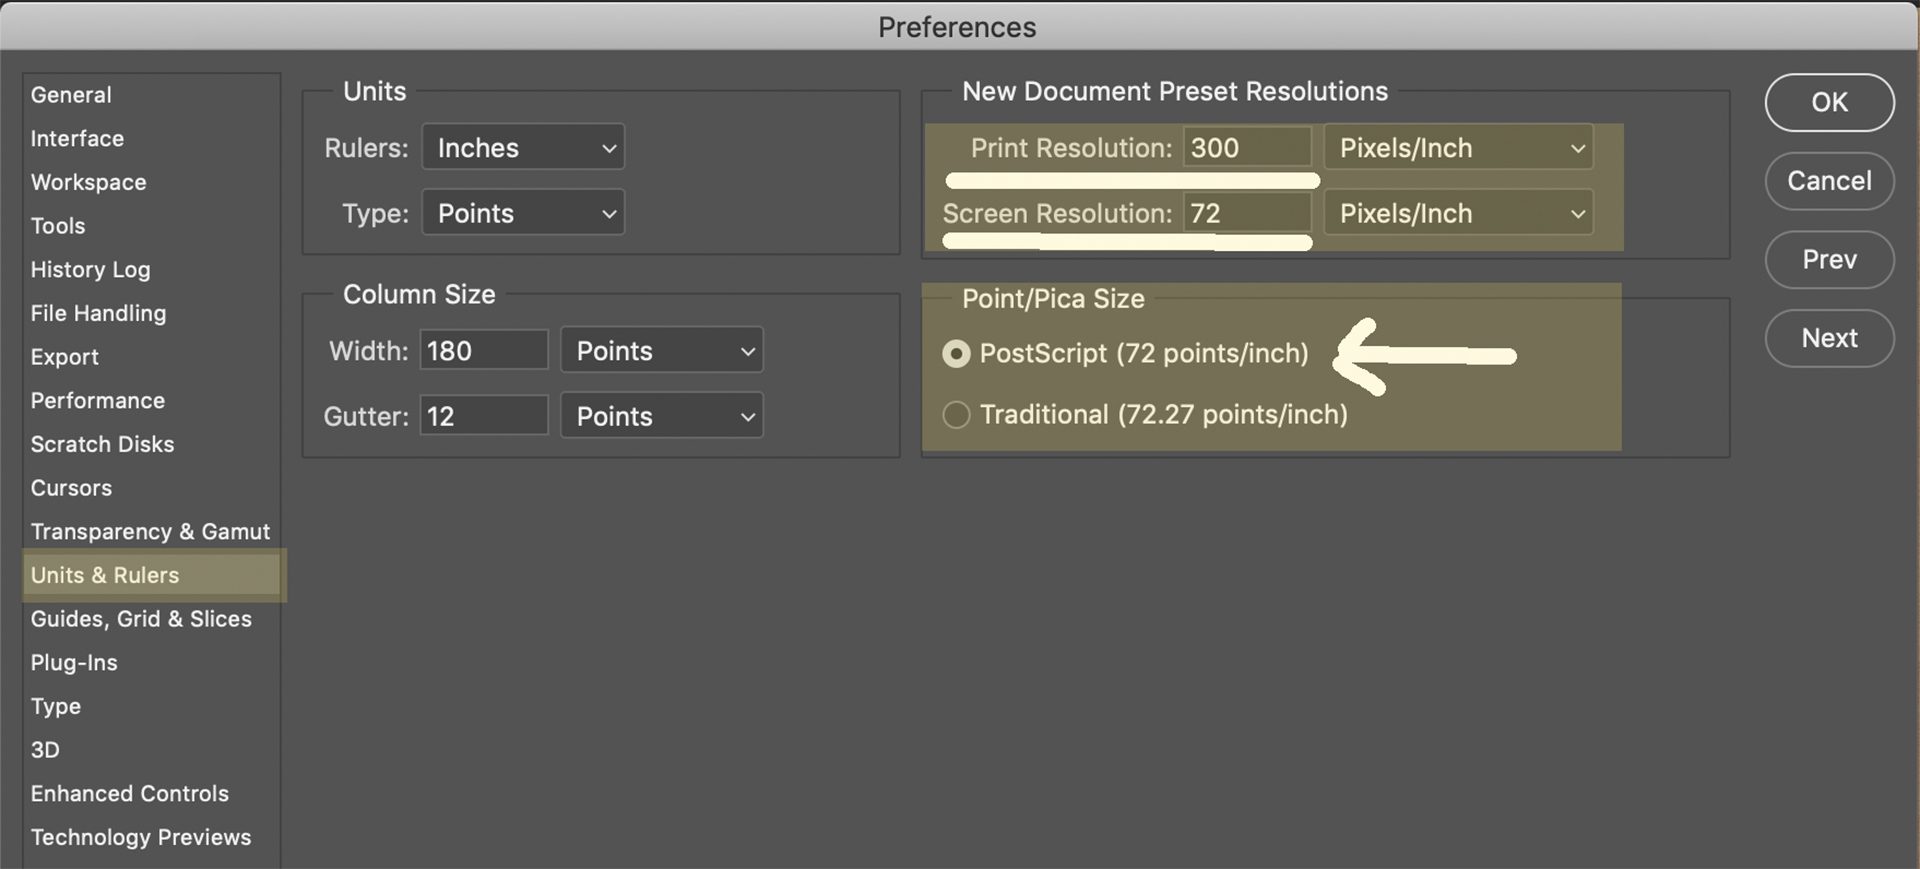 Adobe Photoshop Preferences